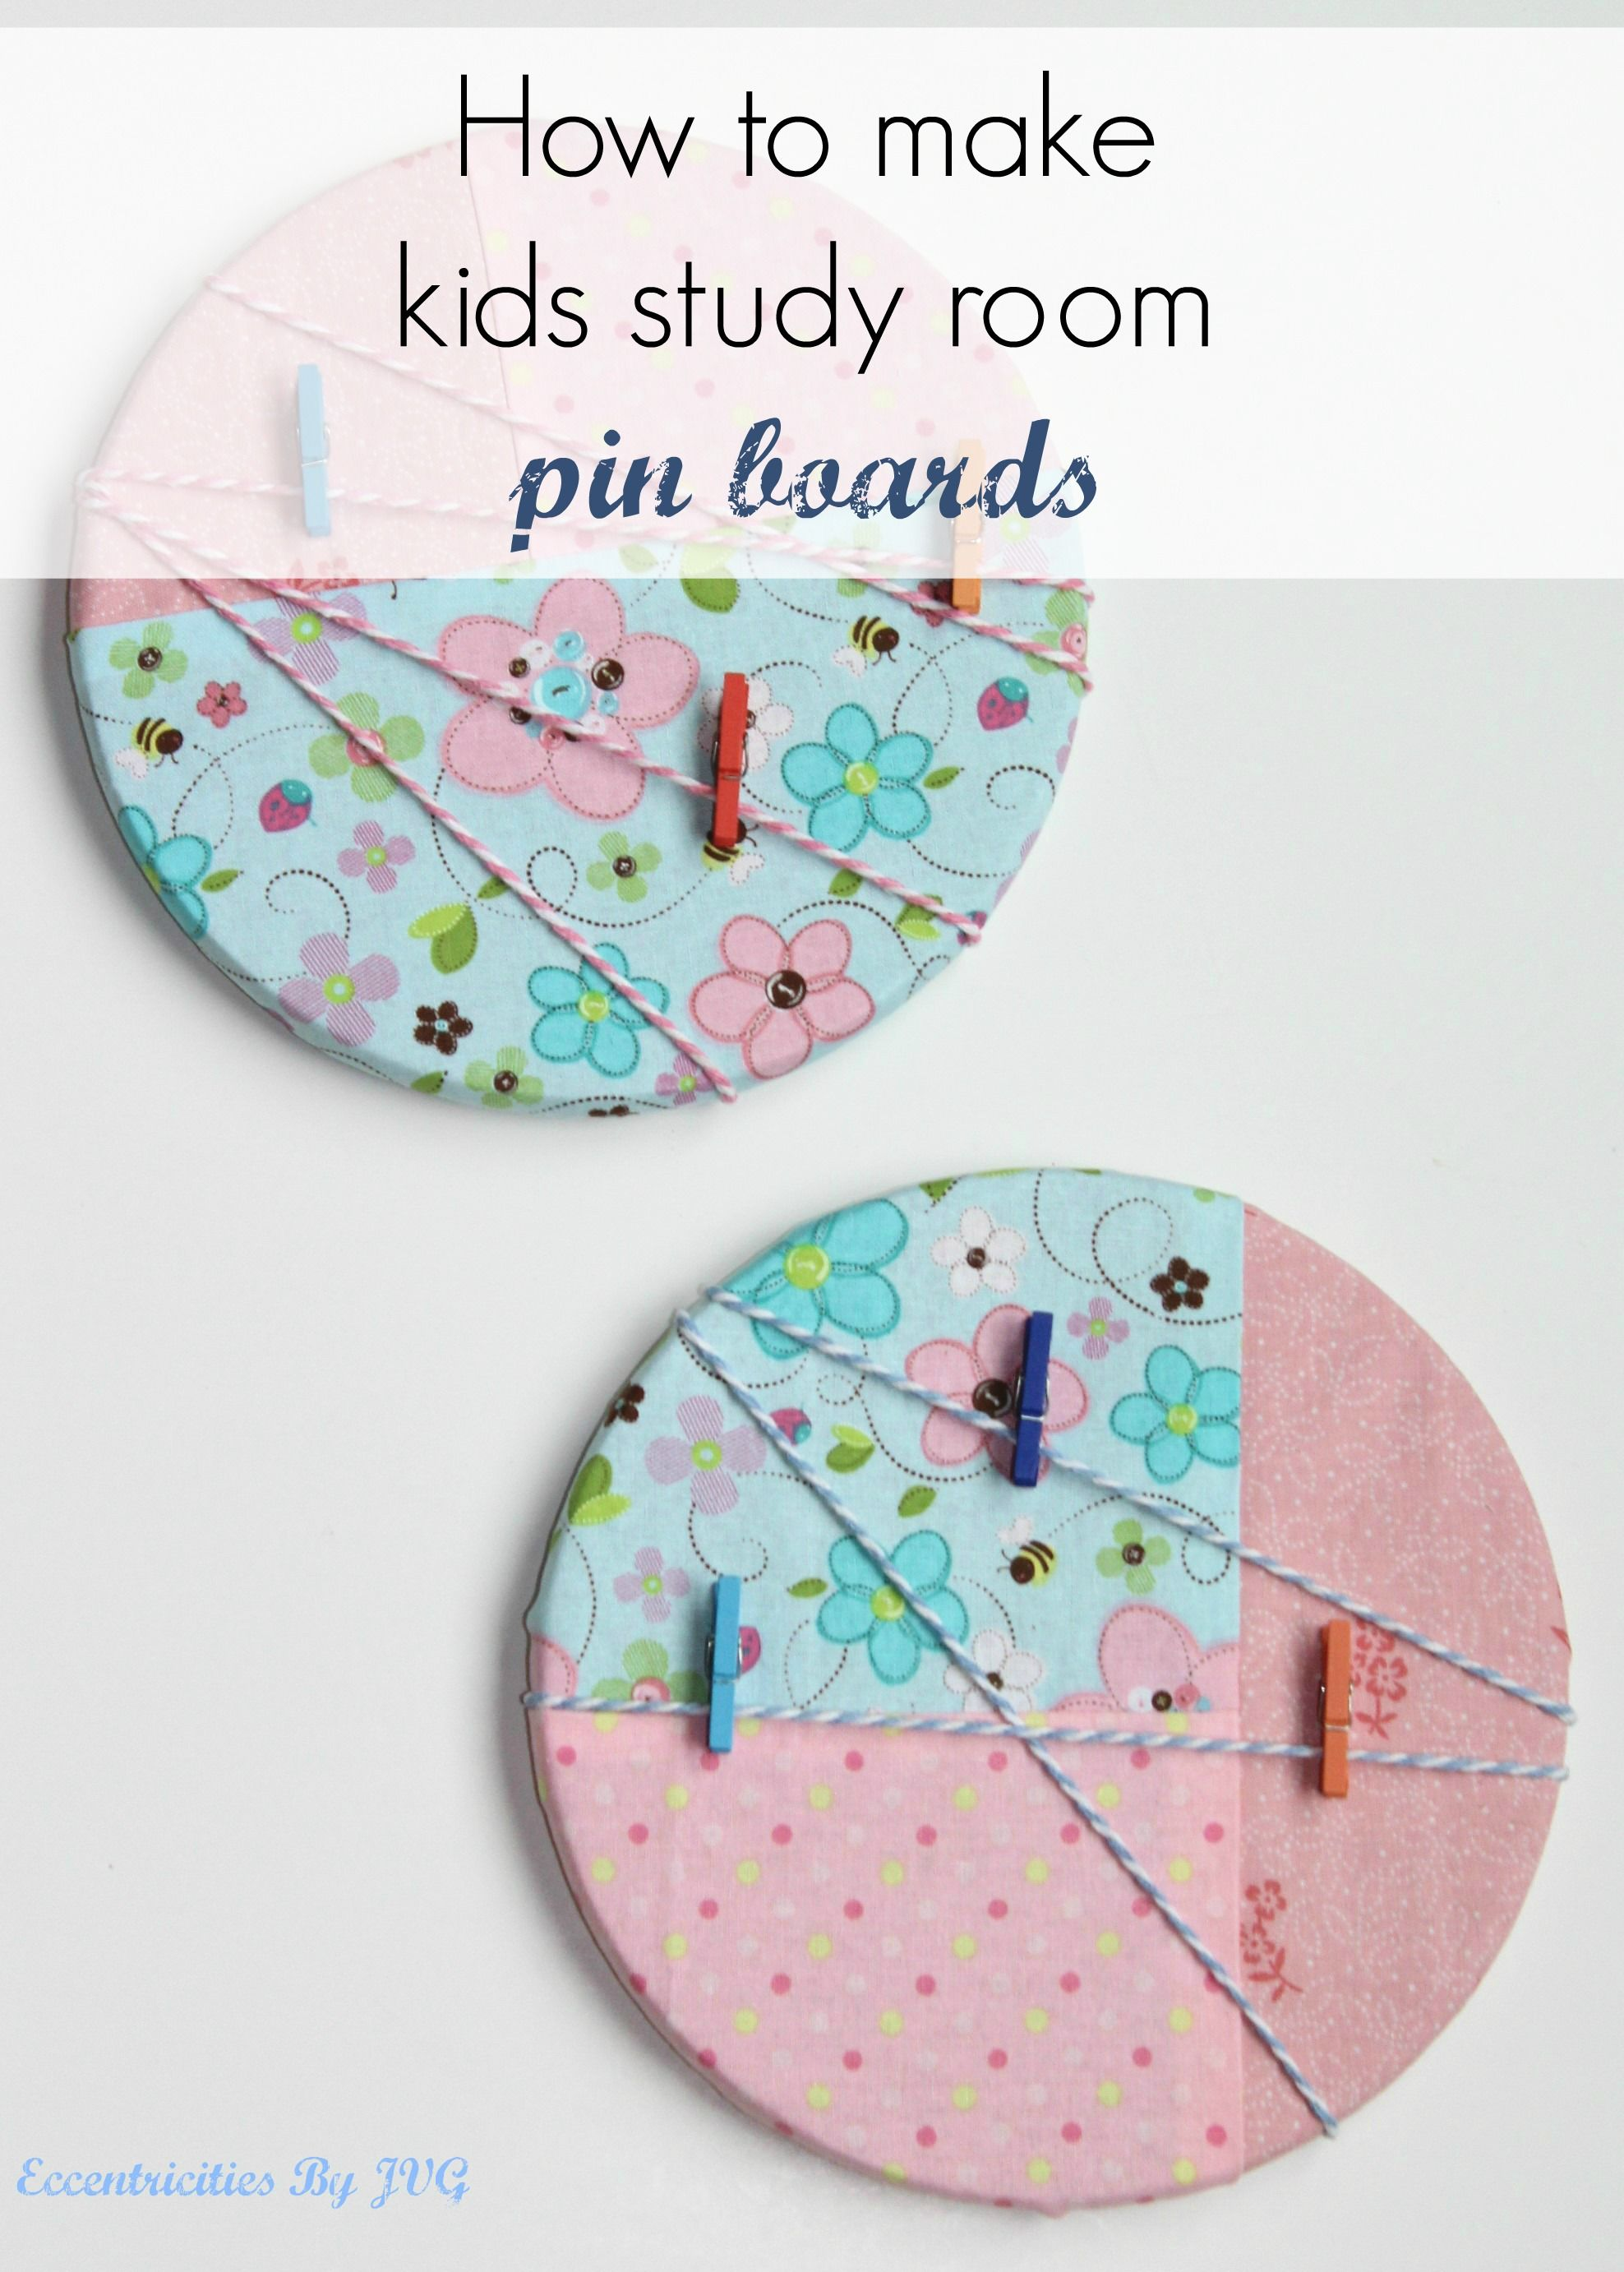 kids study room pin boards kids study study rooms and pin boards rh pinterest com Pin Pile Wall Push Pins for Bulletin Boards